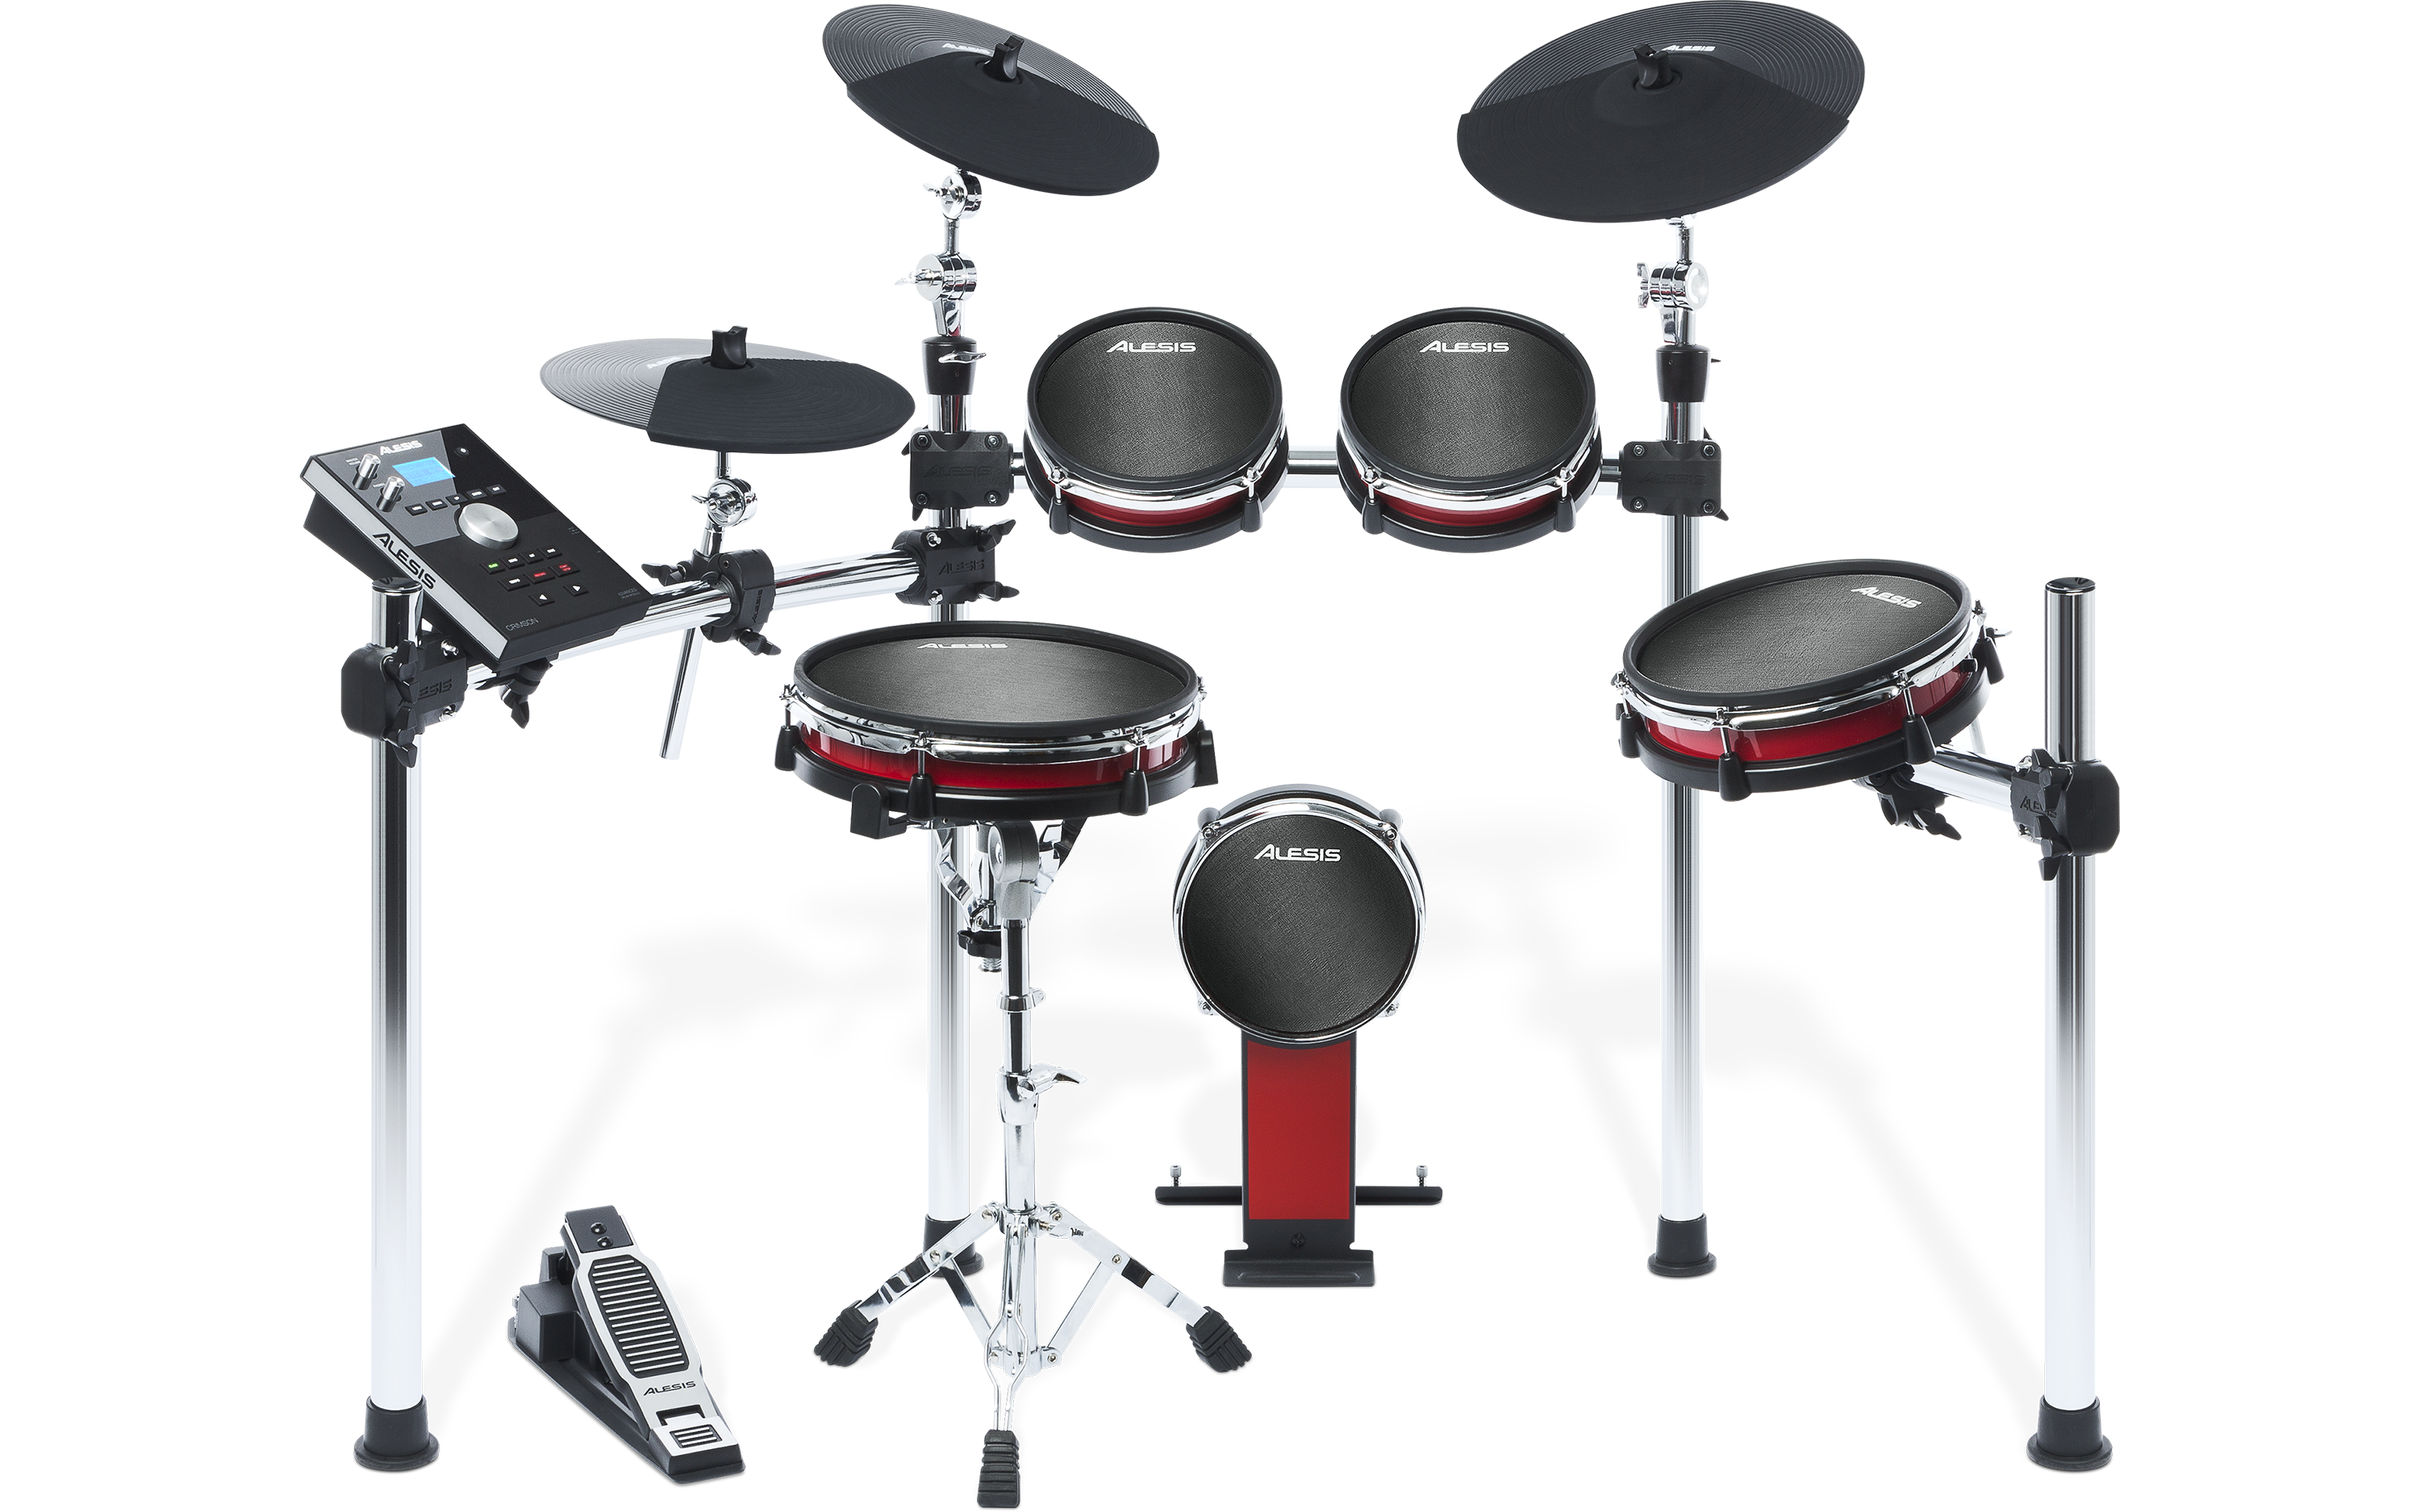 The Alesis Crimson Mesh Kit